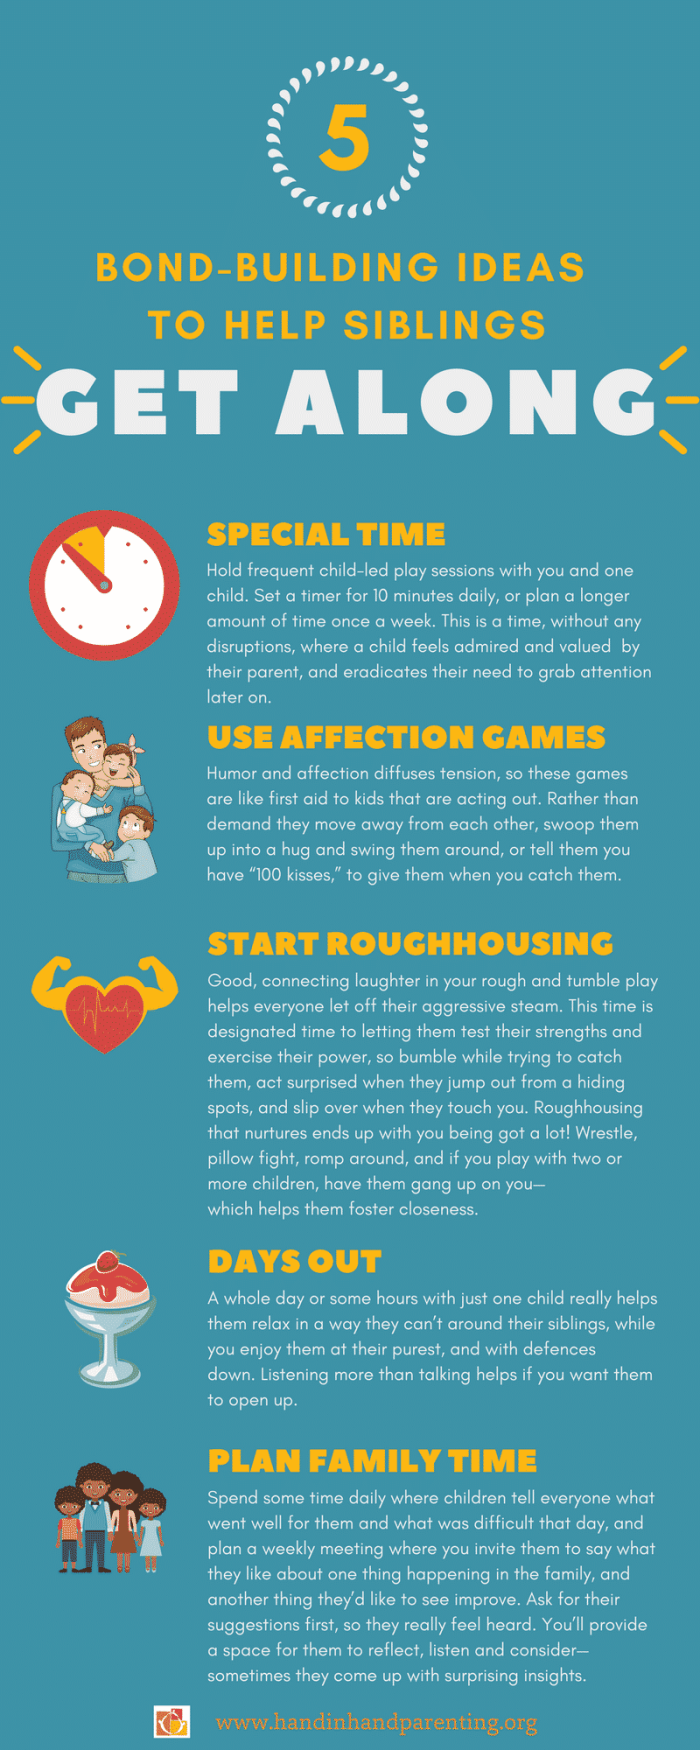 5 bond building ideas to help siblings get along Infographic